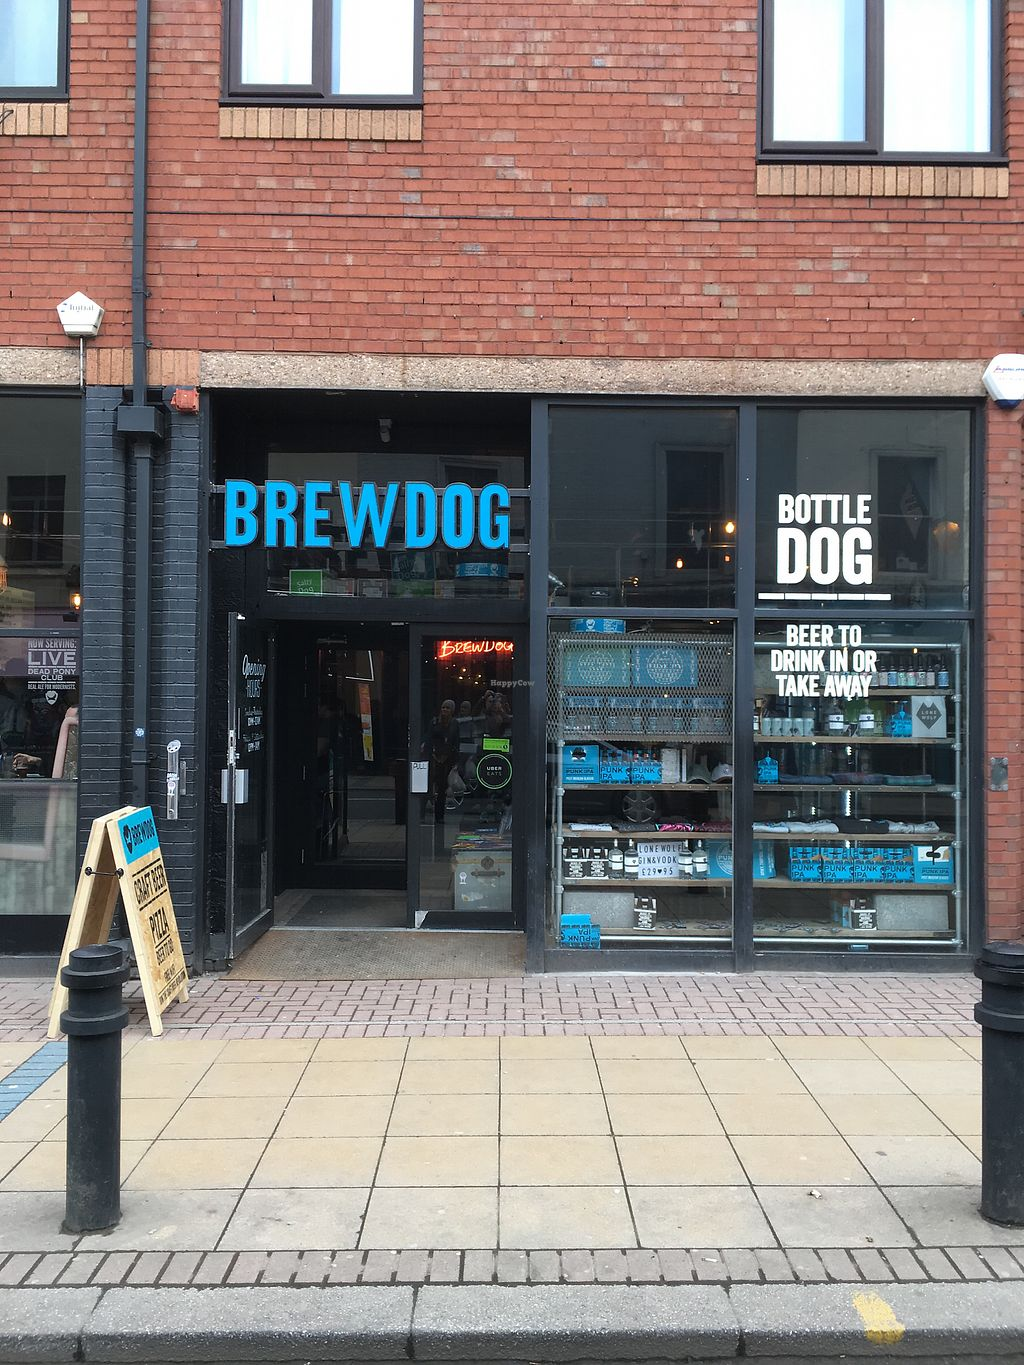 """Photo of BrewDog  by <a href=""""/members/profile/hack_man"""">hack_man</a> <br/>Exterior  <br/> March 24, 2018  - <a href='/contact/abuse/image/115558/375513'>Report</a>"""